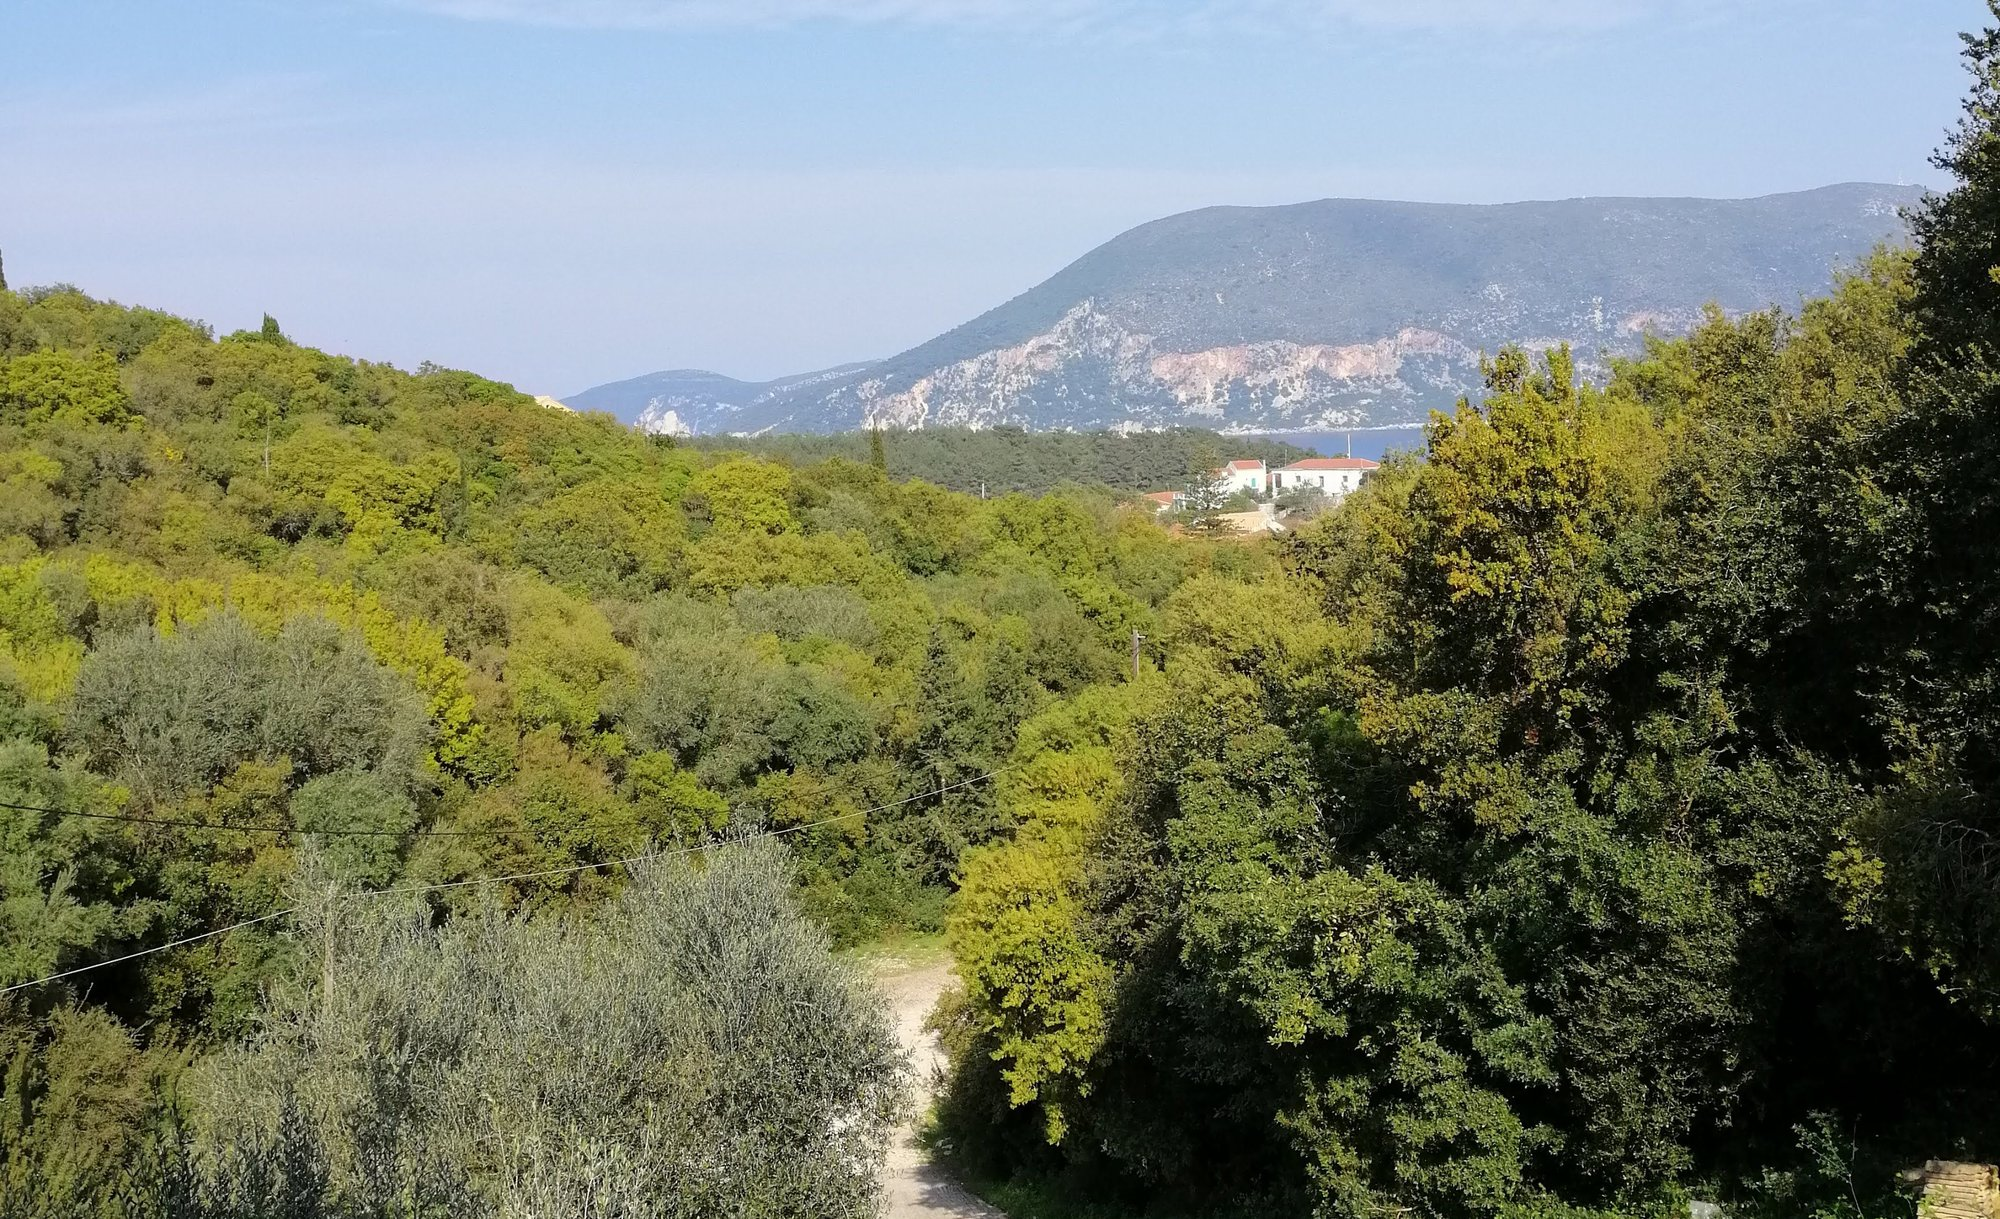 Fioroula's access track from Fiscardo